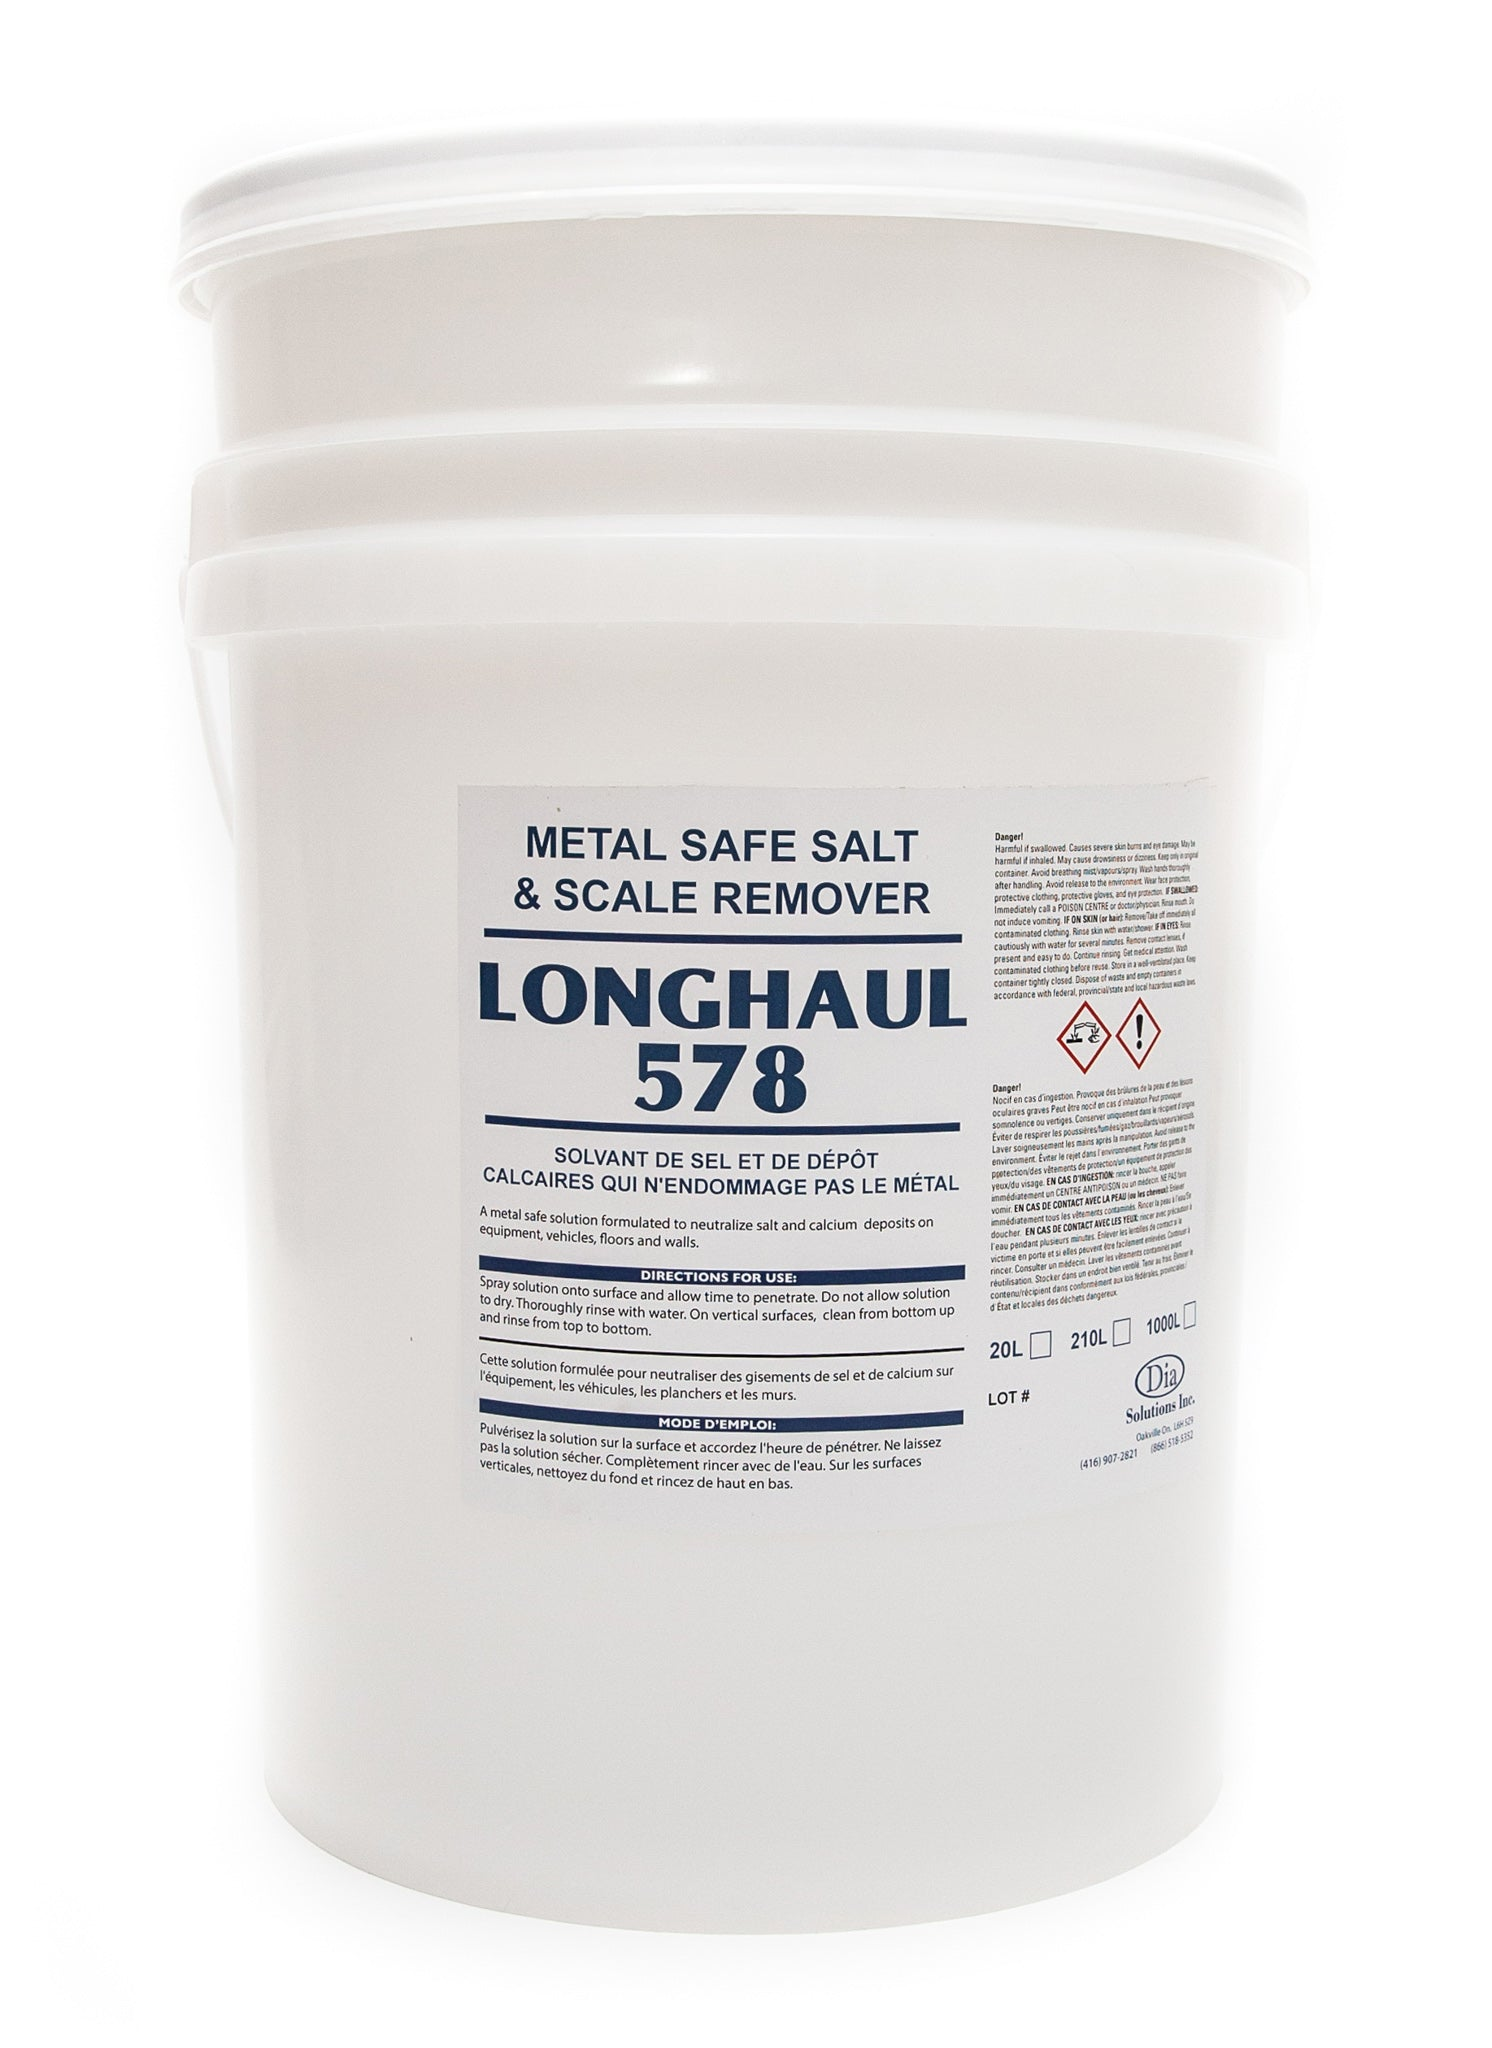 Longhaul 578 - Metal Safe Salt and Scale Remover